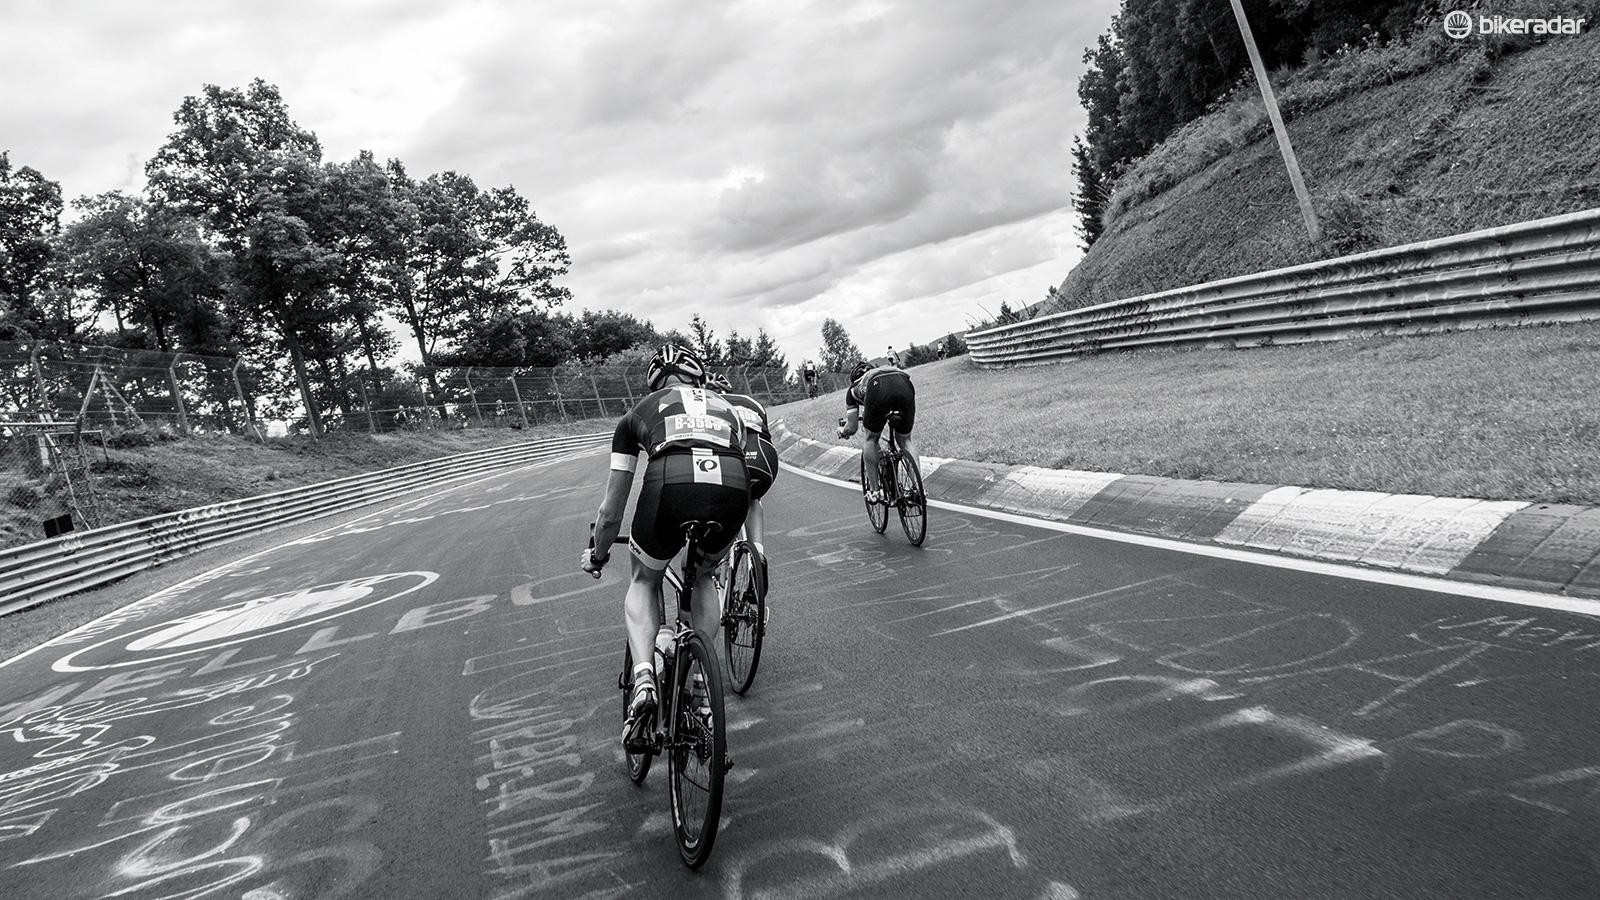 The course was a 15-mile lap with 1,500ft of climbing